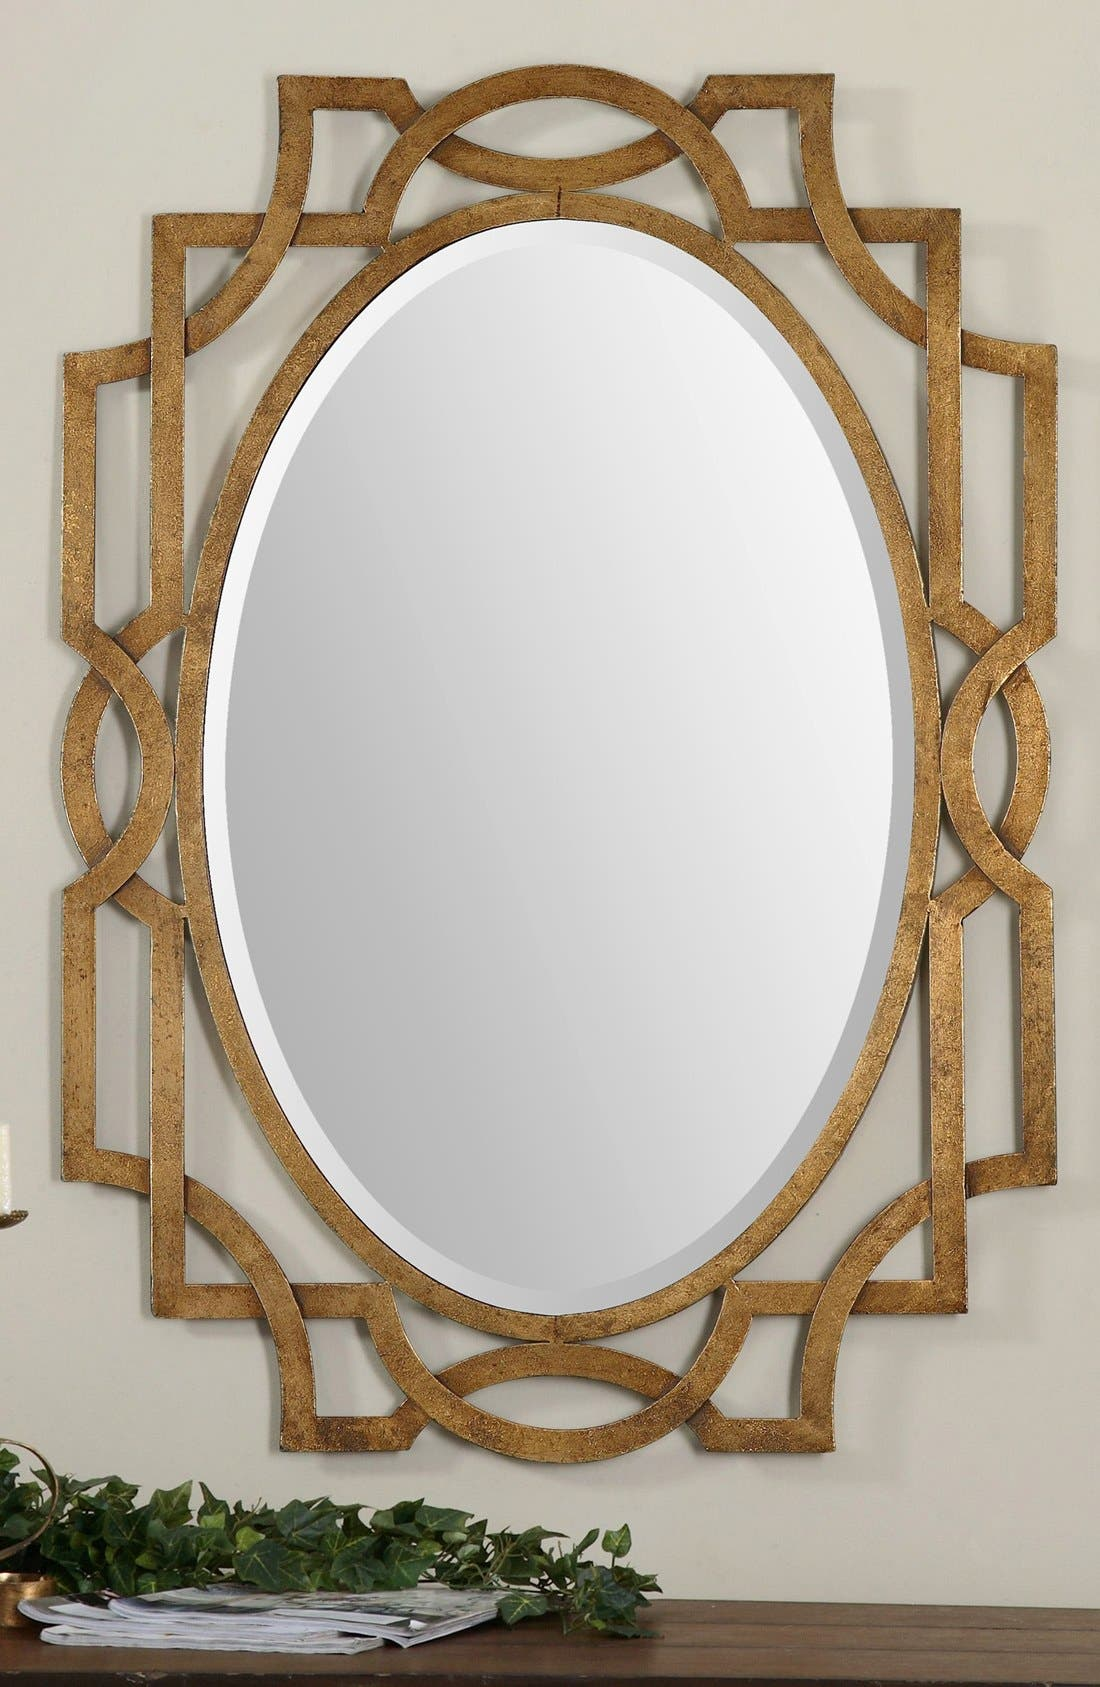 'Margutta' Antiqued Goldtone Oval Mirror,                             Alternate thumbnail 3, color,                             710